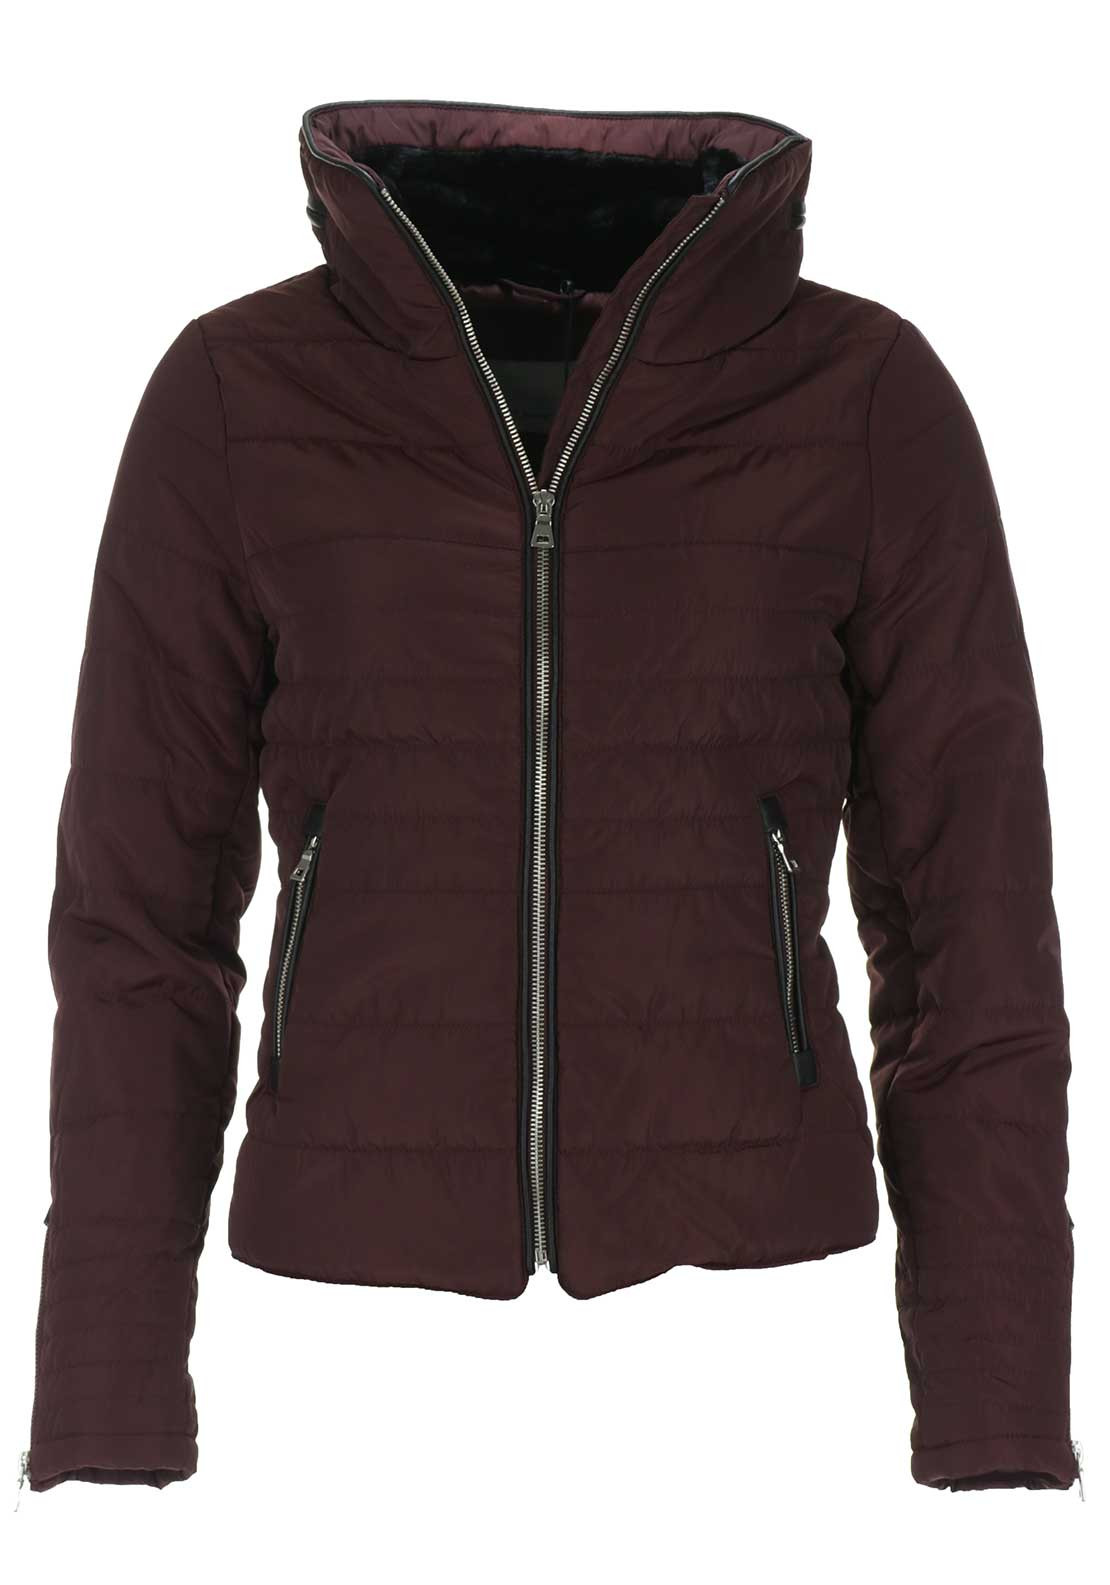 Vero Moda Lulu High Collar Quilted Jacket, Wine